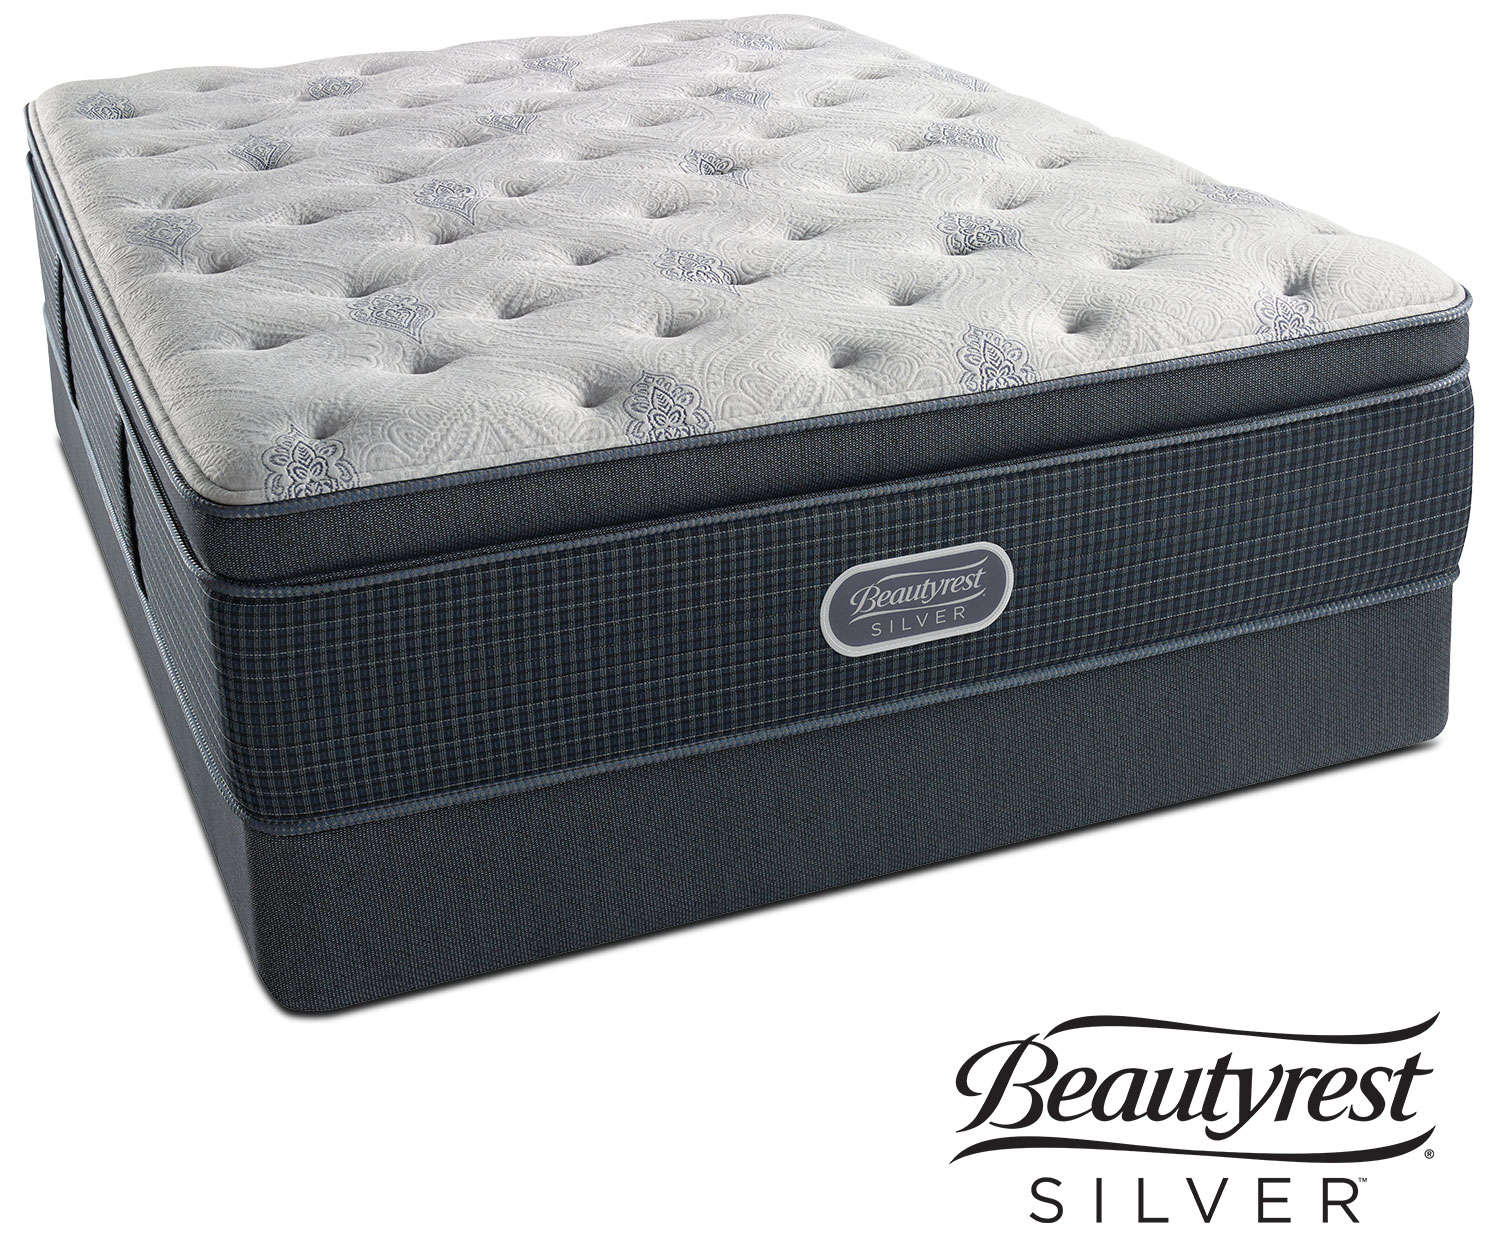 Mattresses and Bedding | Value City Furniture and Mattresses